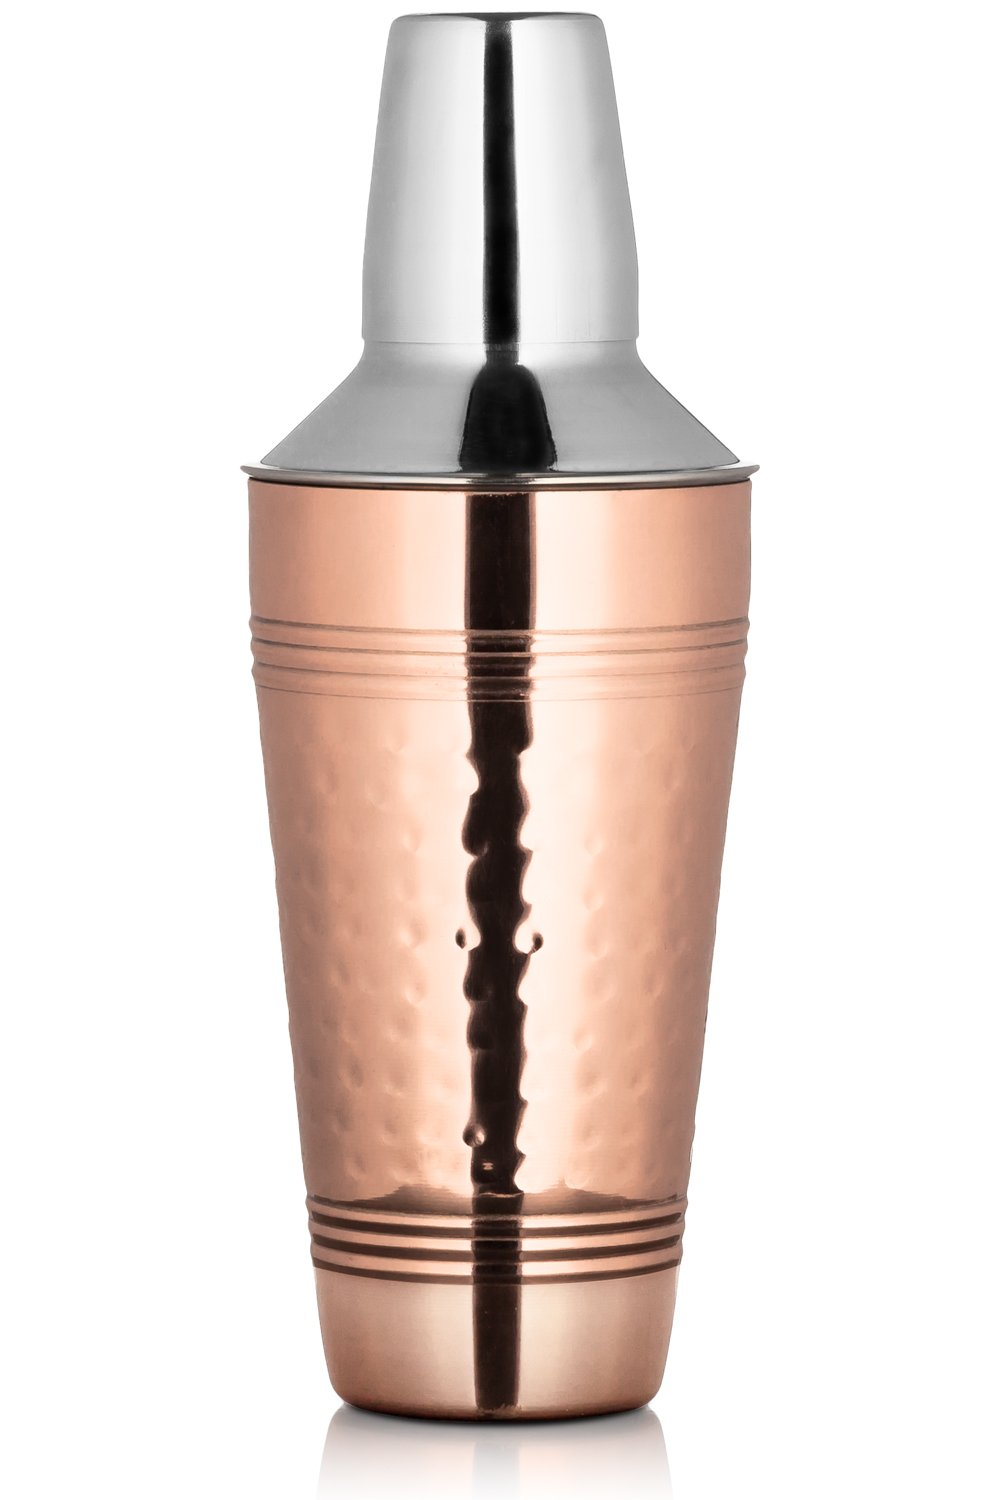 Chef's Star 25.3 oz ( 750 ml ) Handmade Hammered Copper Cocktail Shaker